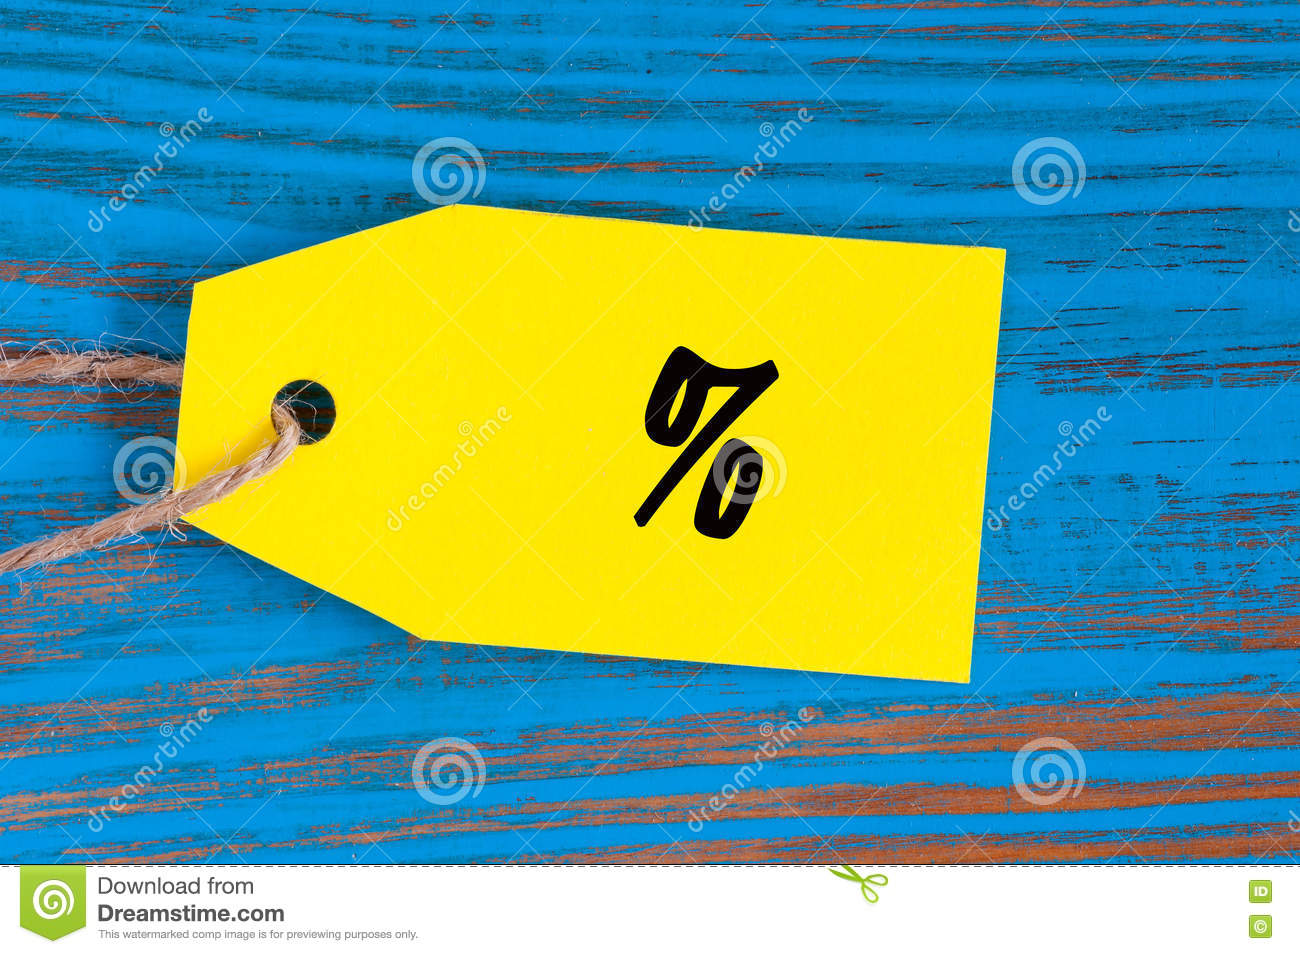 Percent Symbol Of Cloth On Yellow Tag At Blue Wooden Background